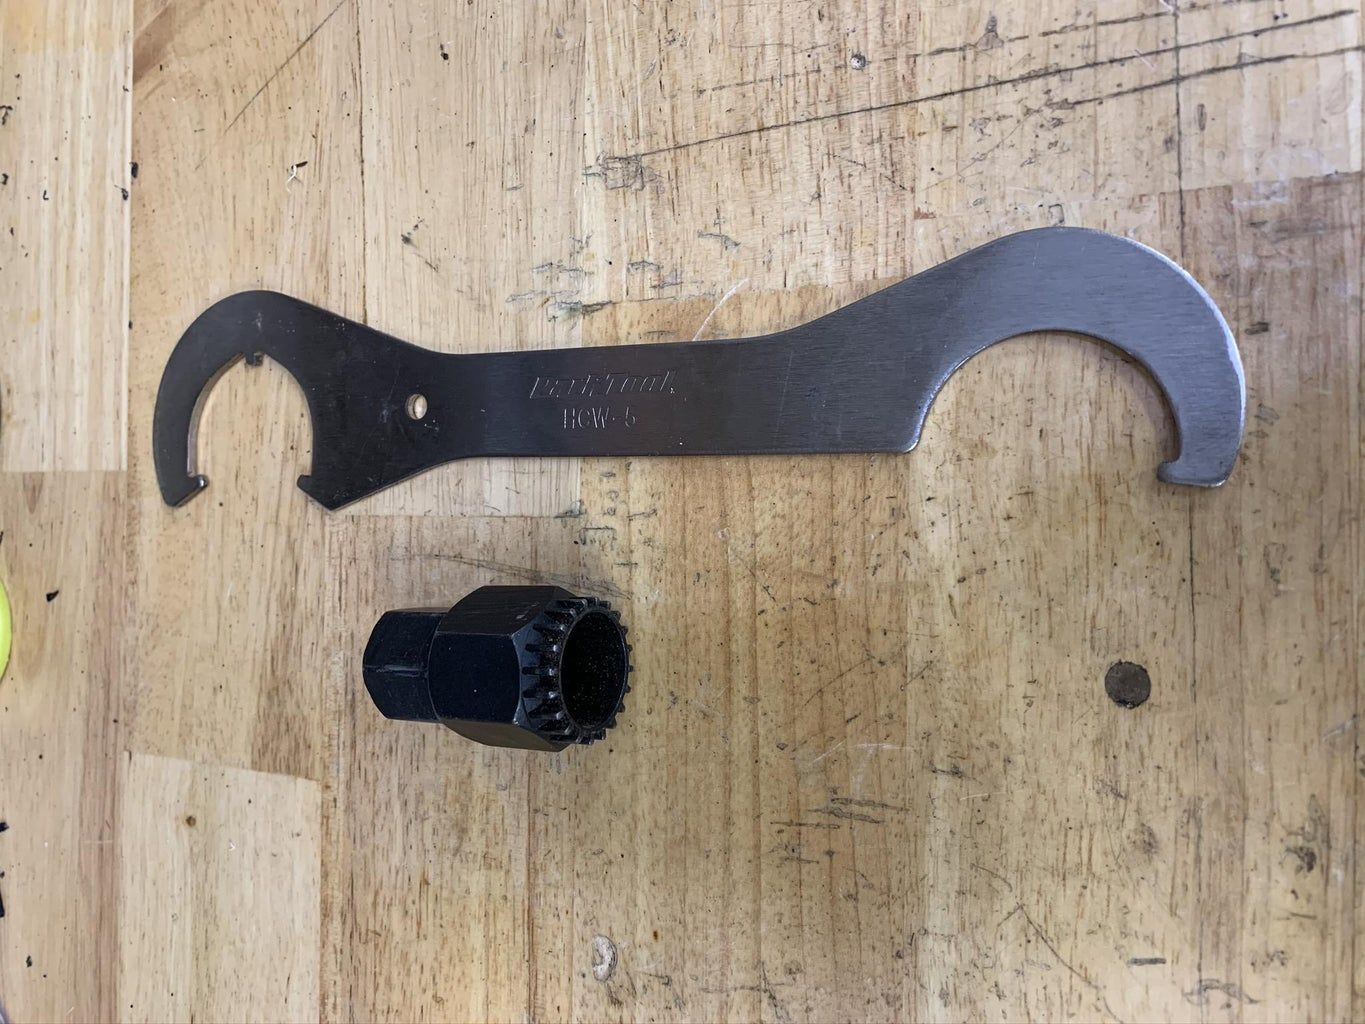 Bottom Brackets and Bearings, Oh My!